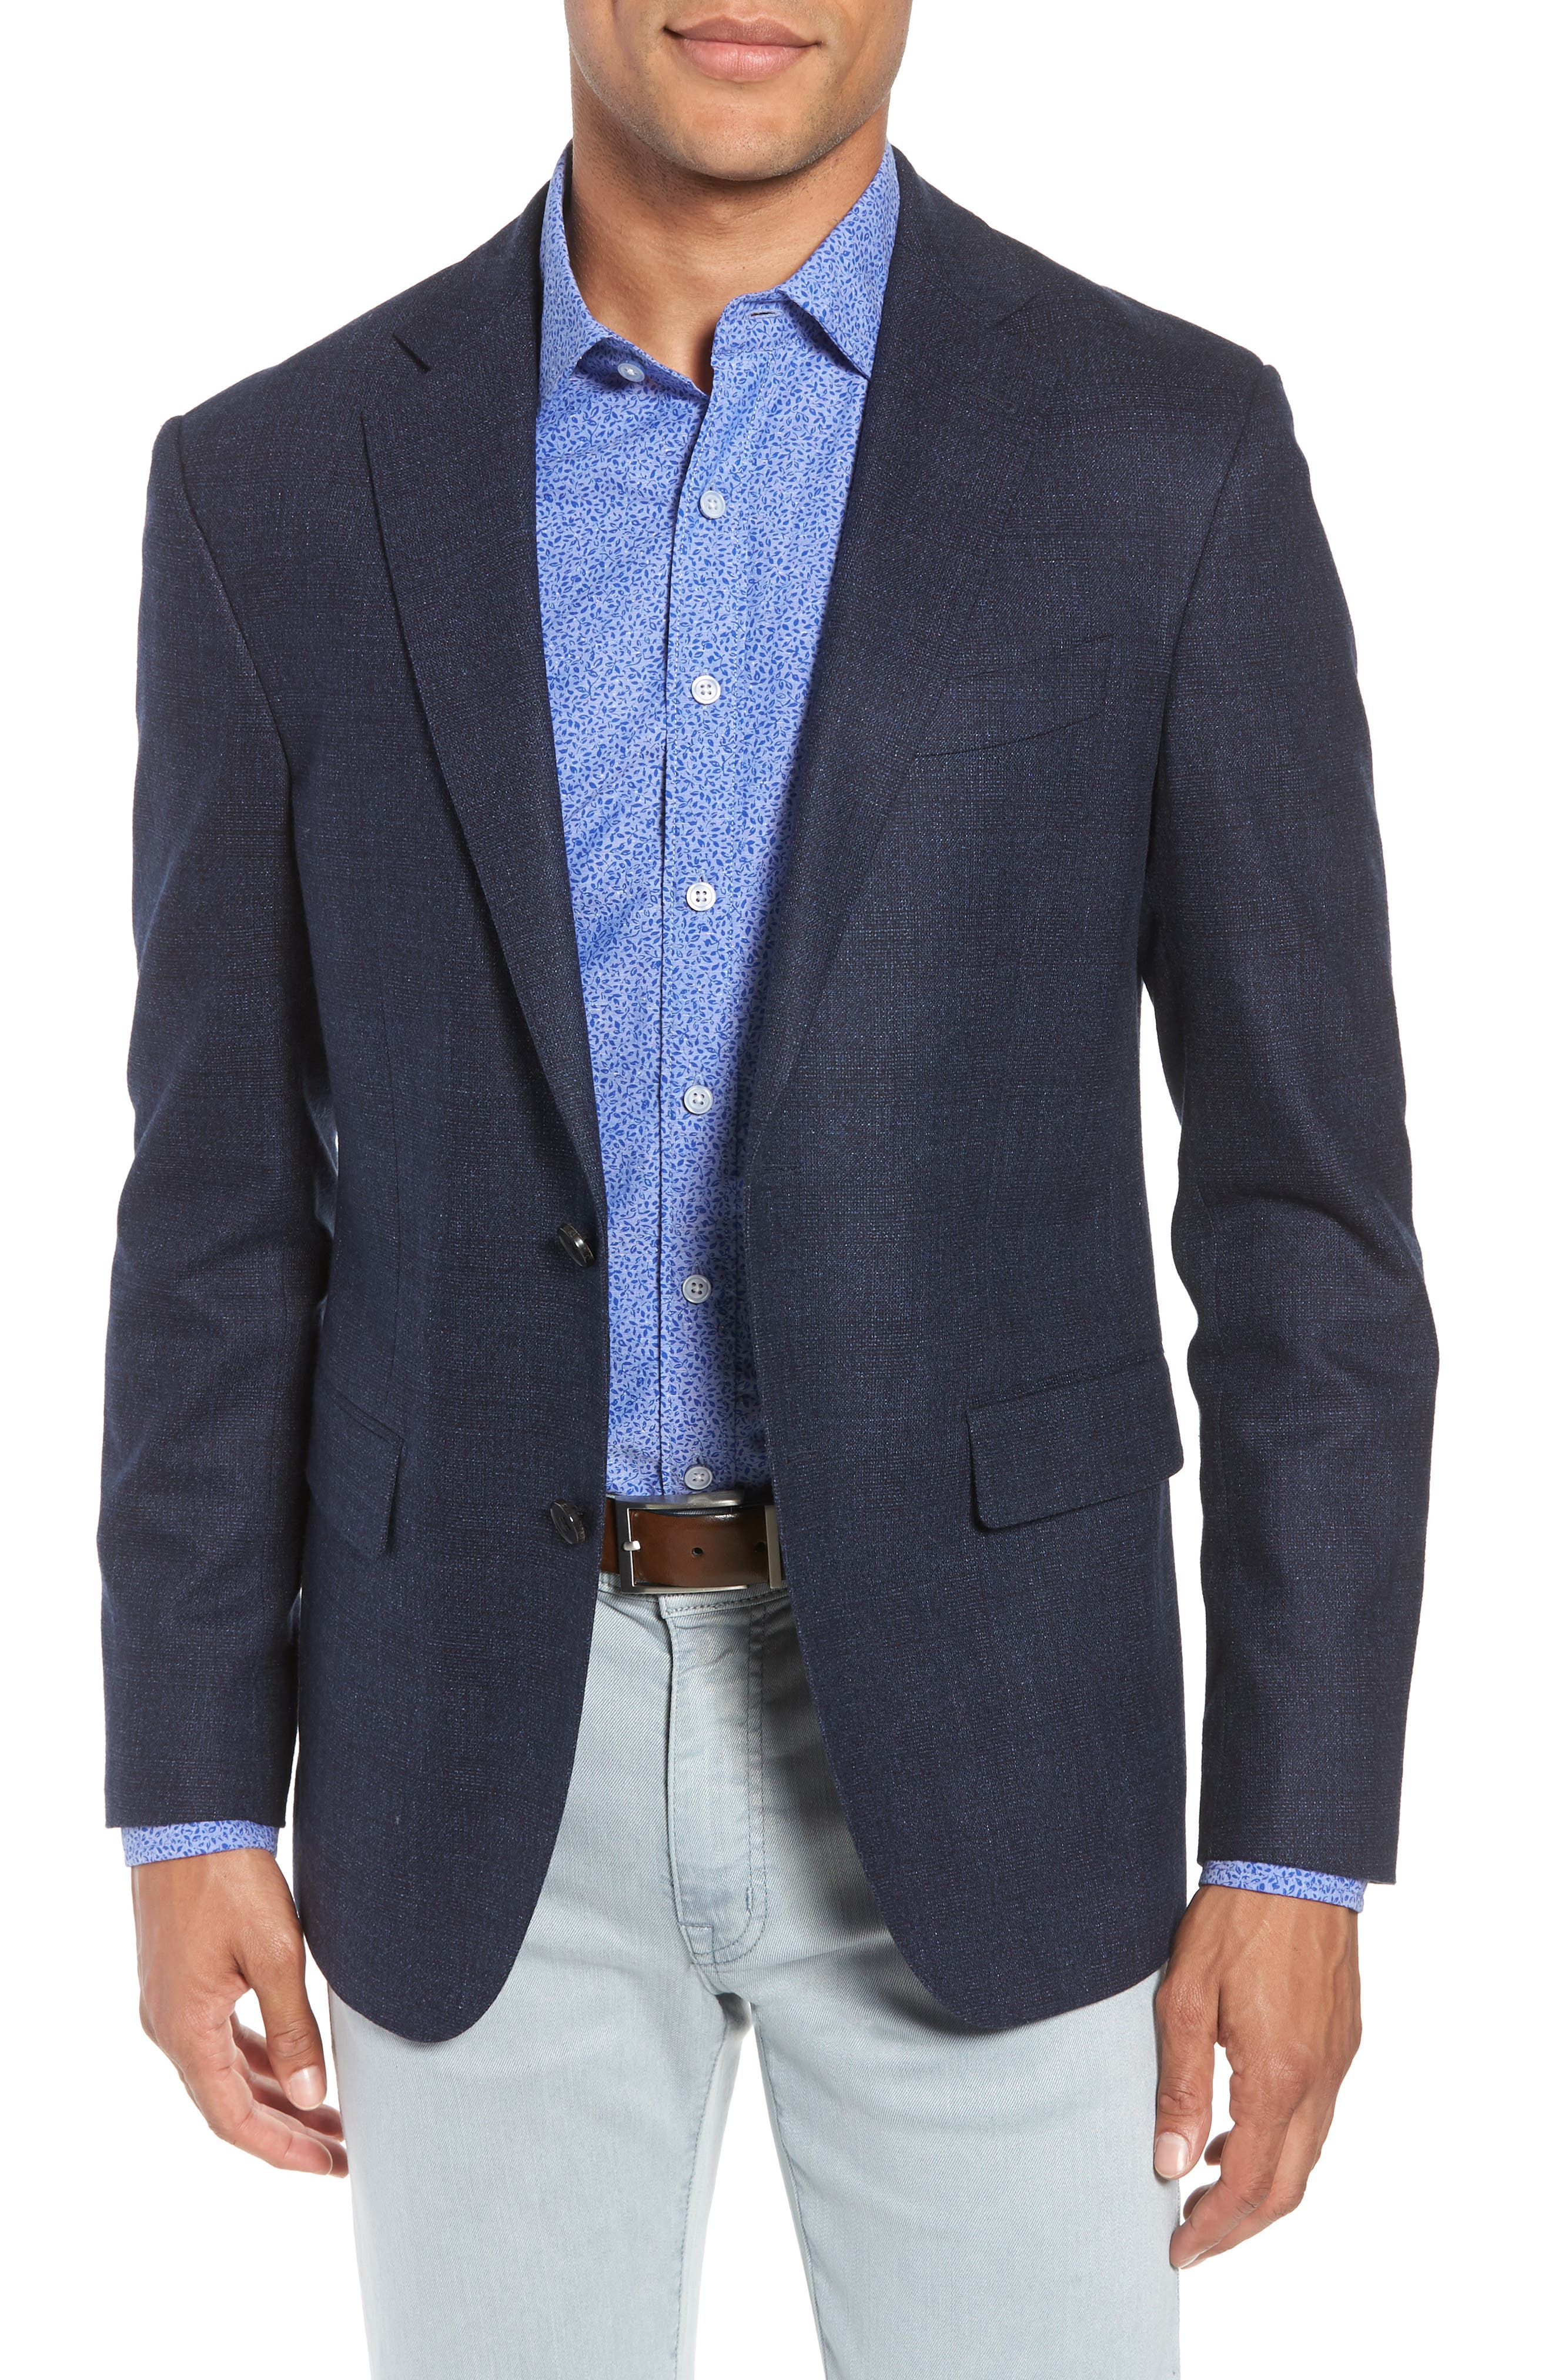 Dannevirk Ghost Check Stretch Wool Blend Blazer,                             Main thumbnail 1, color,                             NAVY